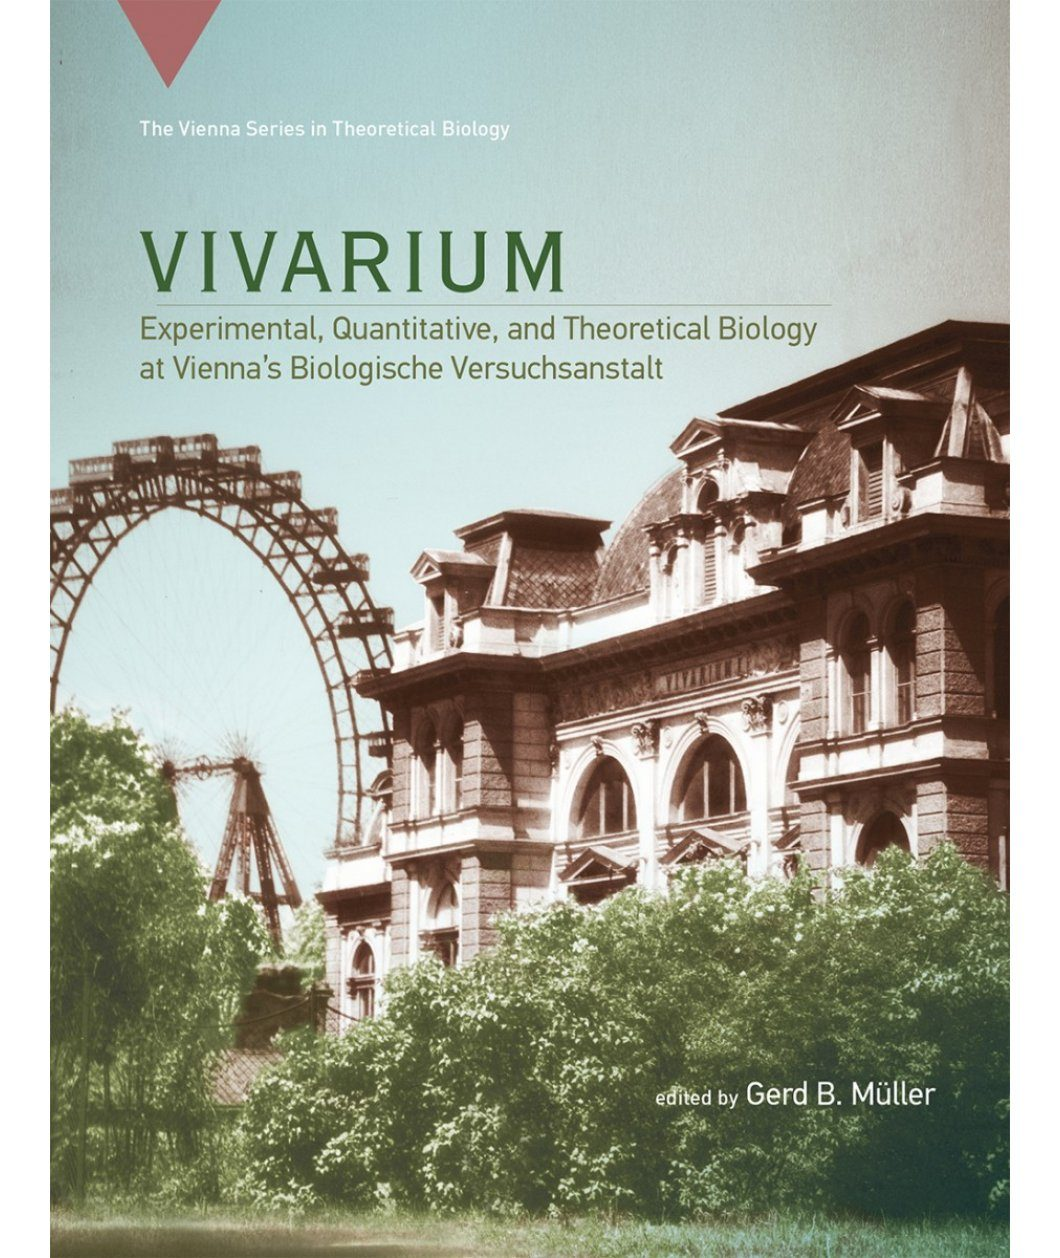 Vivarium: Experimental, Quantitative, and Theoretical Biology at Vienna's Biologische Versuchsanstalt